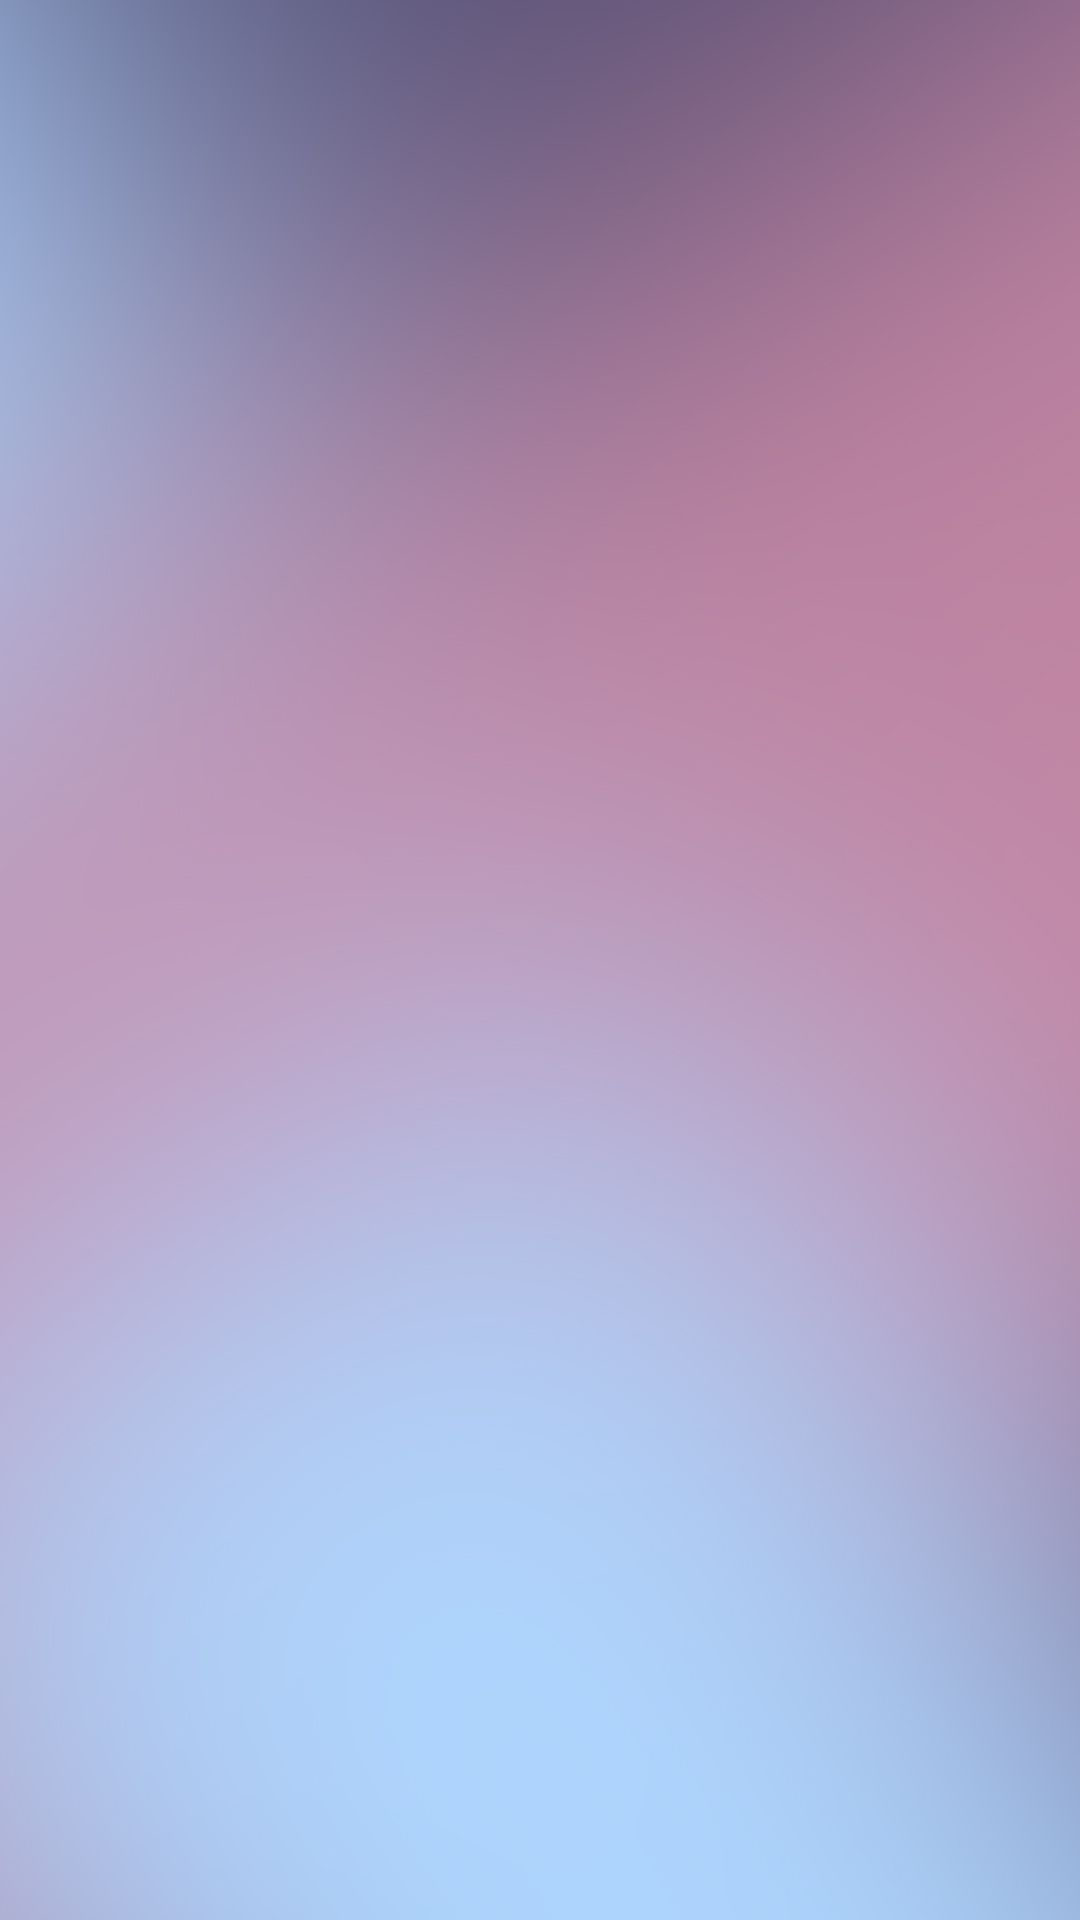 Http Www Vactualpapers Com Gallery Blurry Abstract Colorful Background Mobile Hd Wallpaper 3 Pink Wallpaper Iphone Pink Mountains Iphone Wallpaper